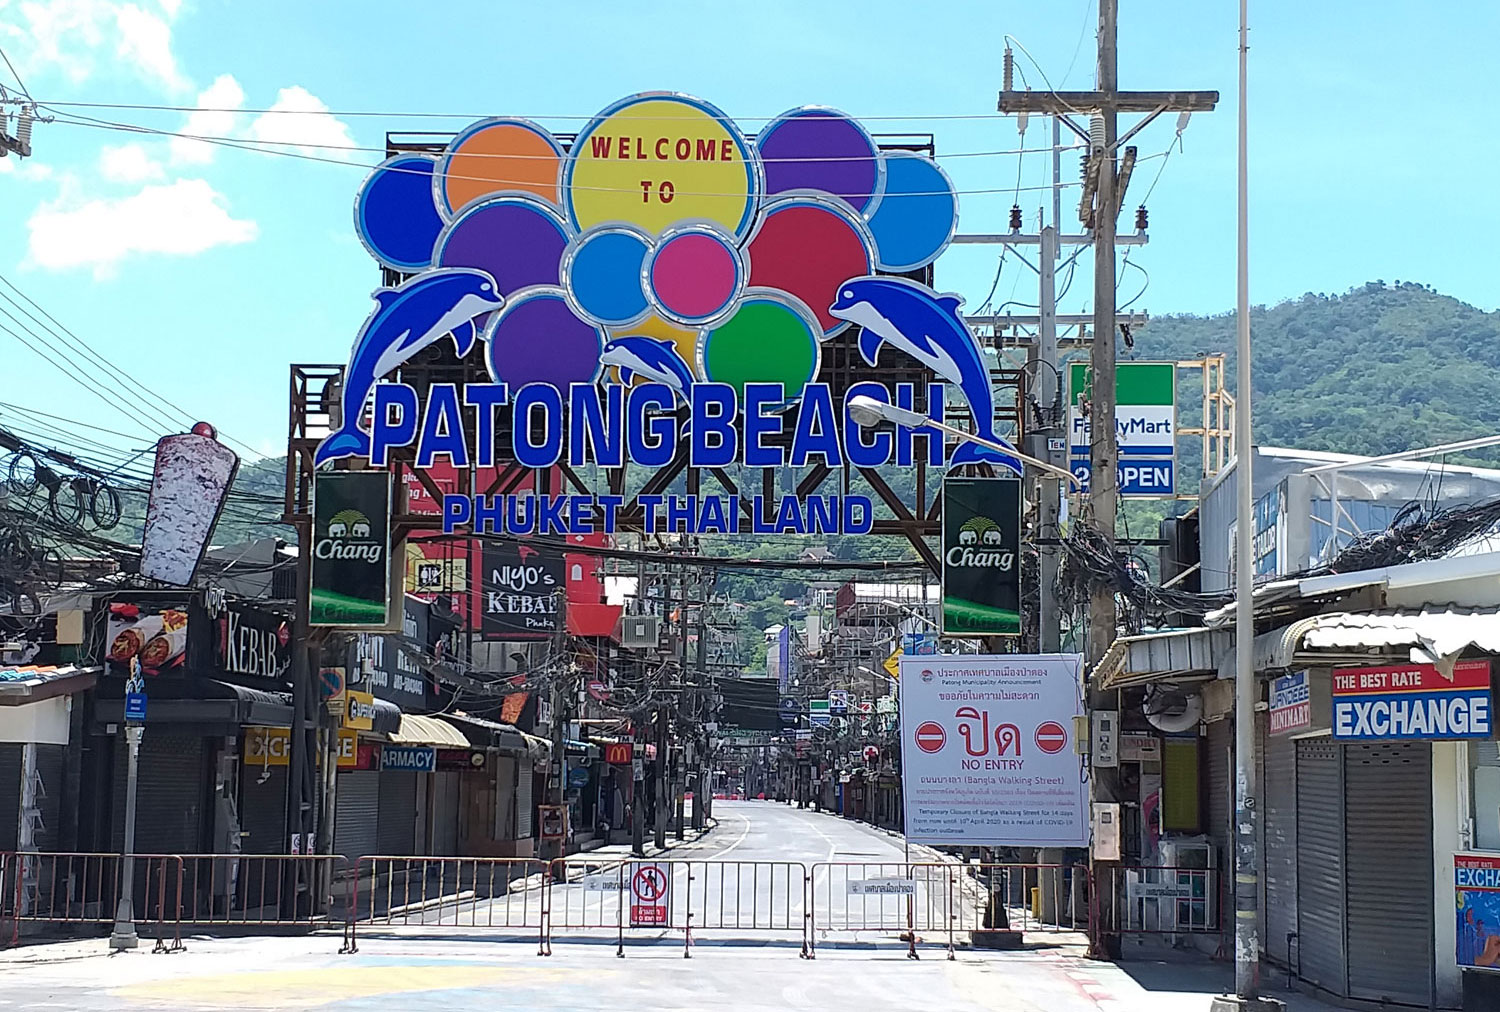 Shops and entertainment venues in the Patong area of Phuket remain shut as part of the effort to contain Covid-19. Authorities on Tuesday reported one more case, bringing the total to 193. (Photo: Achadtaya Chuenniran)